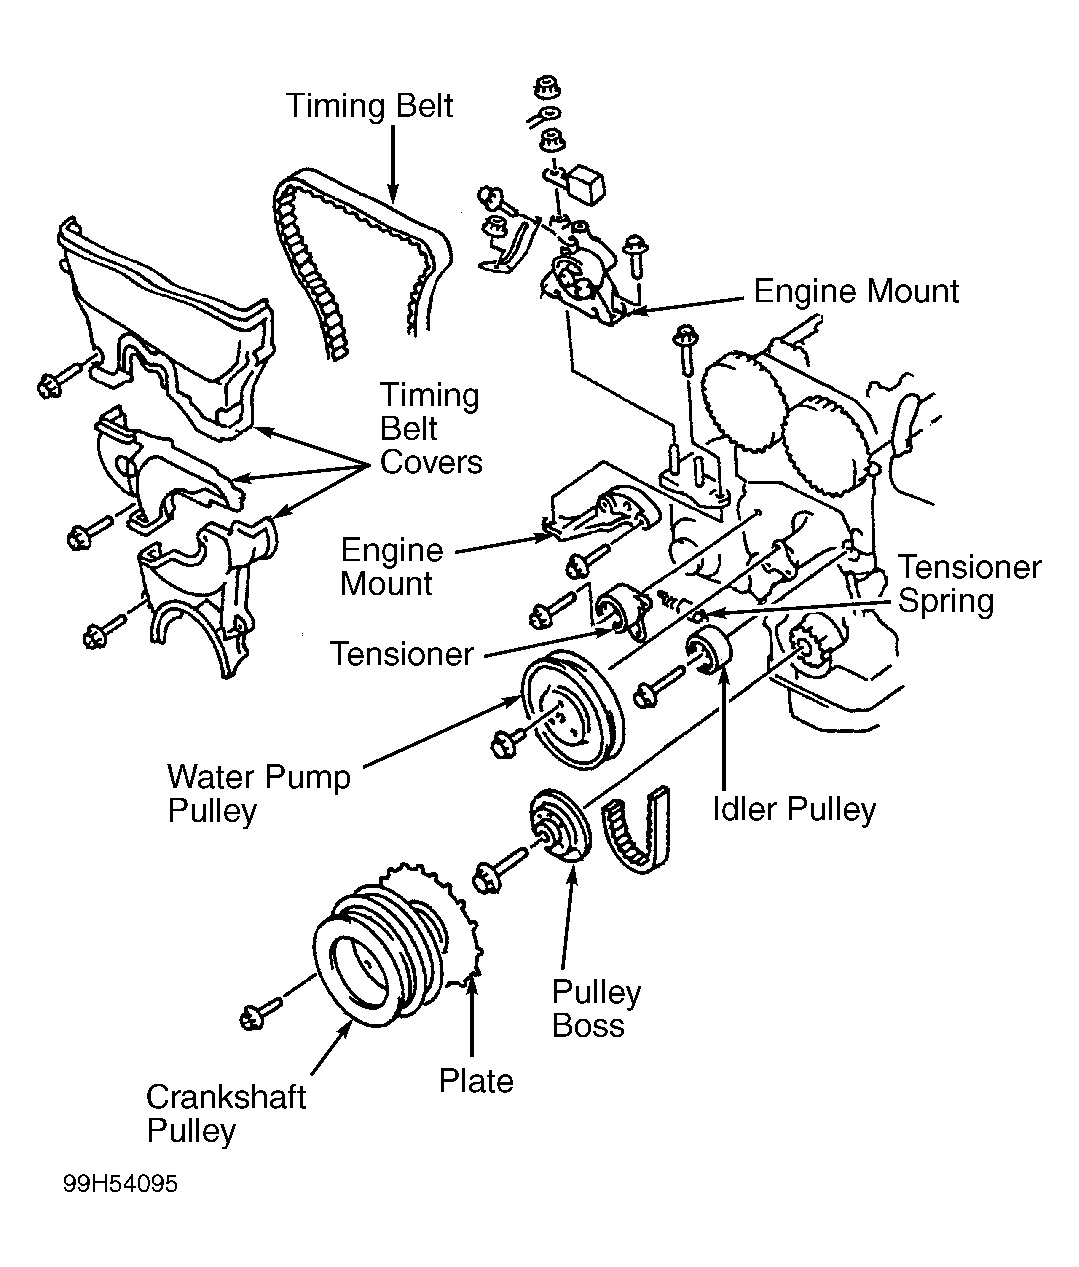 ford ranger 2001 3 0 engine water pump diagram toyota 3.0 engine vaccum hose diagram